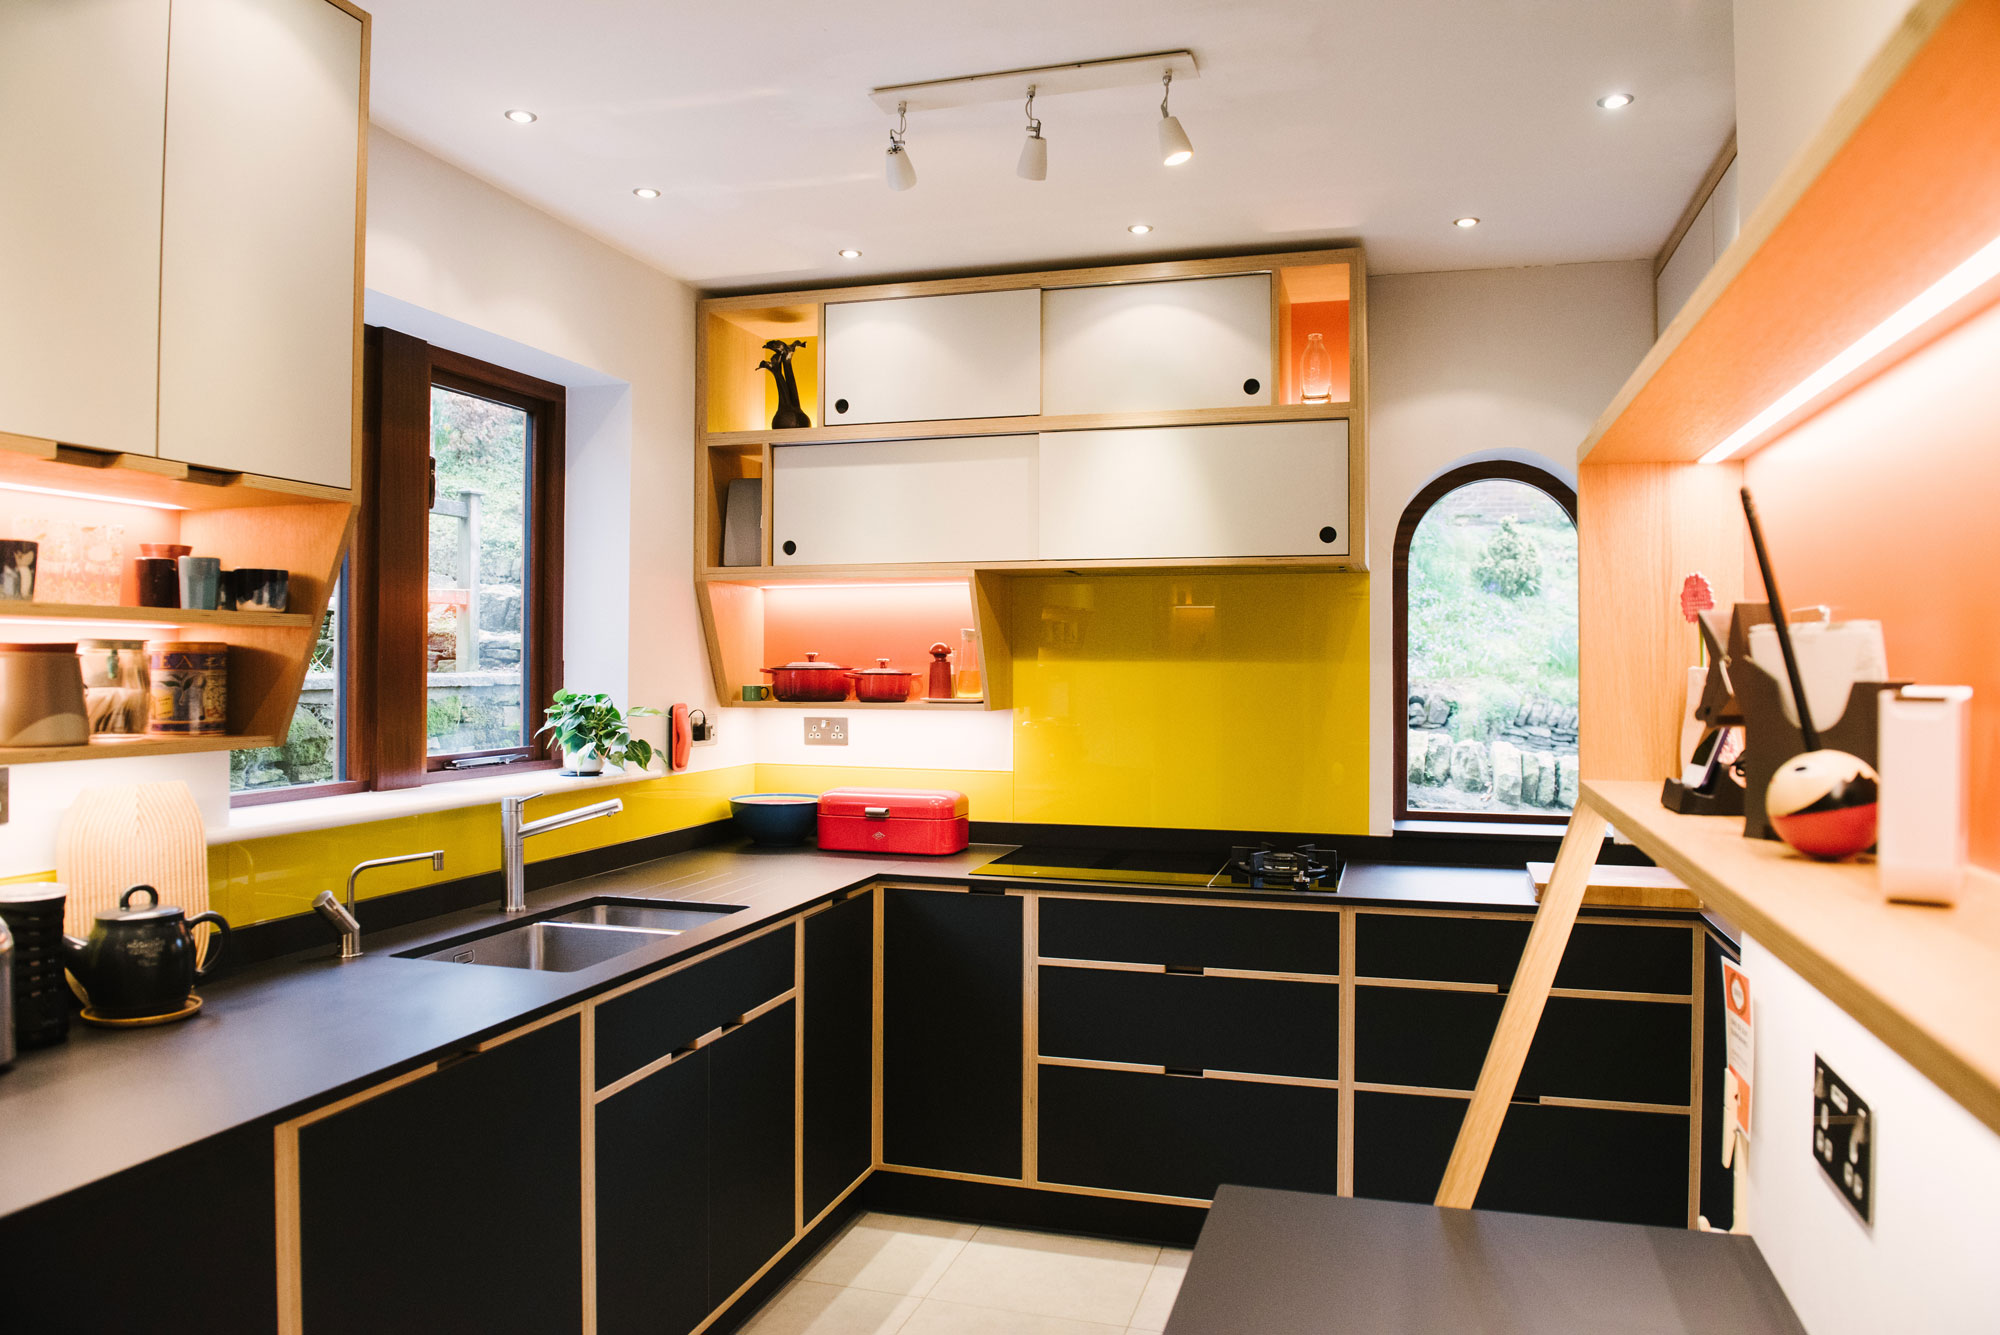 Sink Area of Black Plywood Kitchen with Yellow Splashback